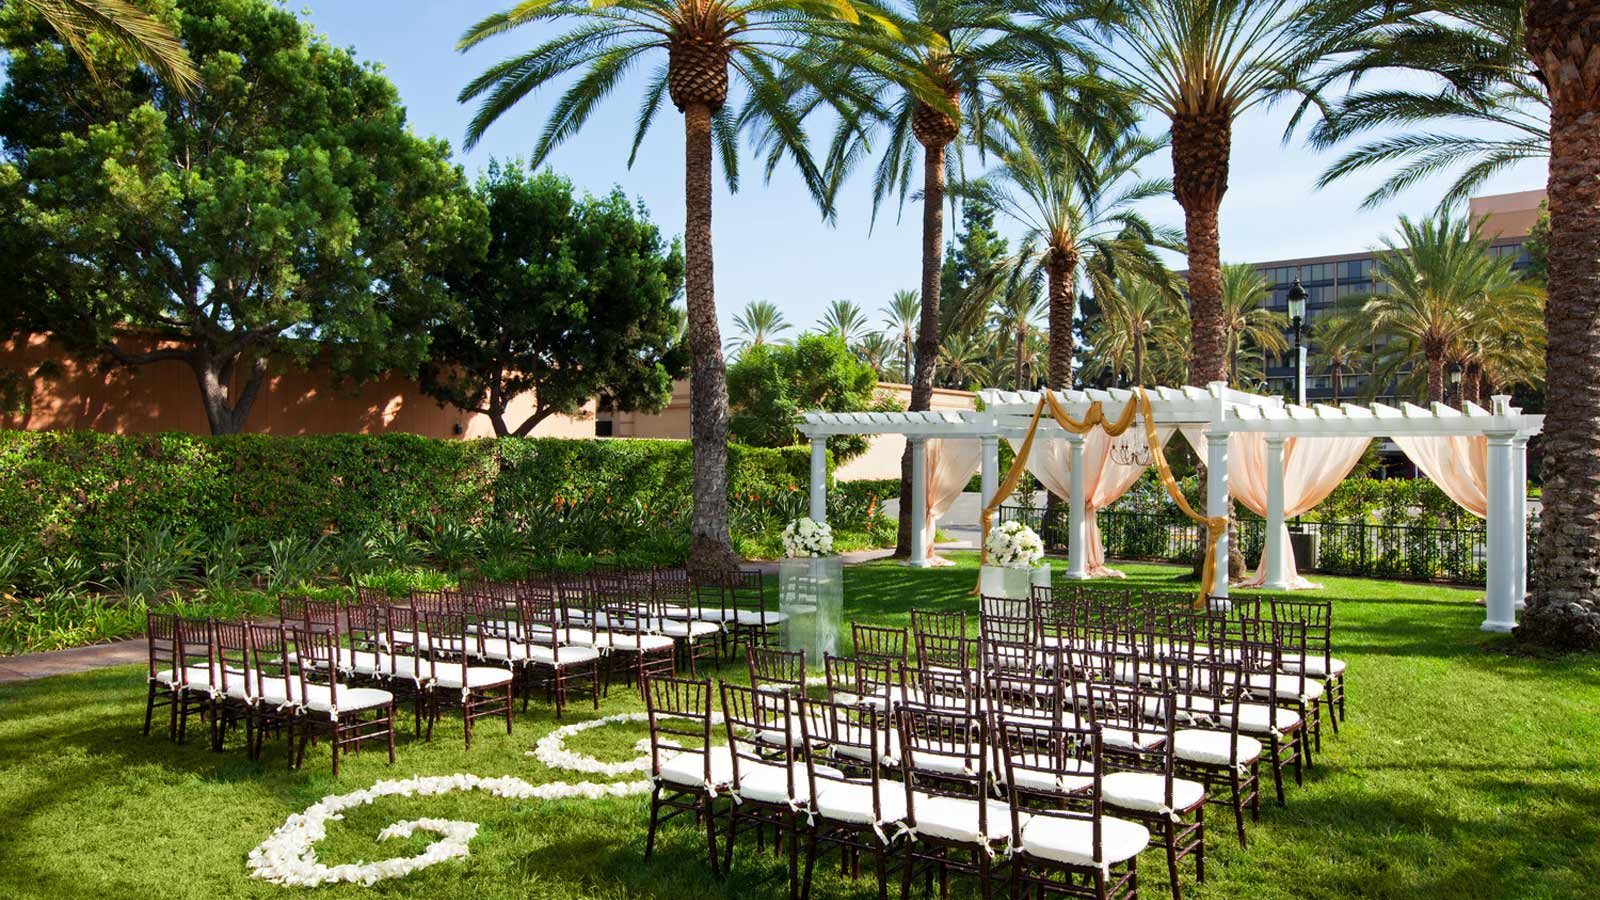 Sheraton Park Hotel at the Anaheim Resort - Outdoor Wedding